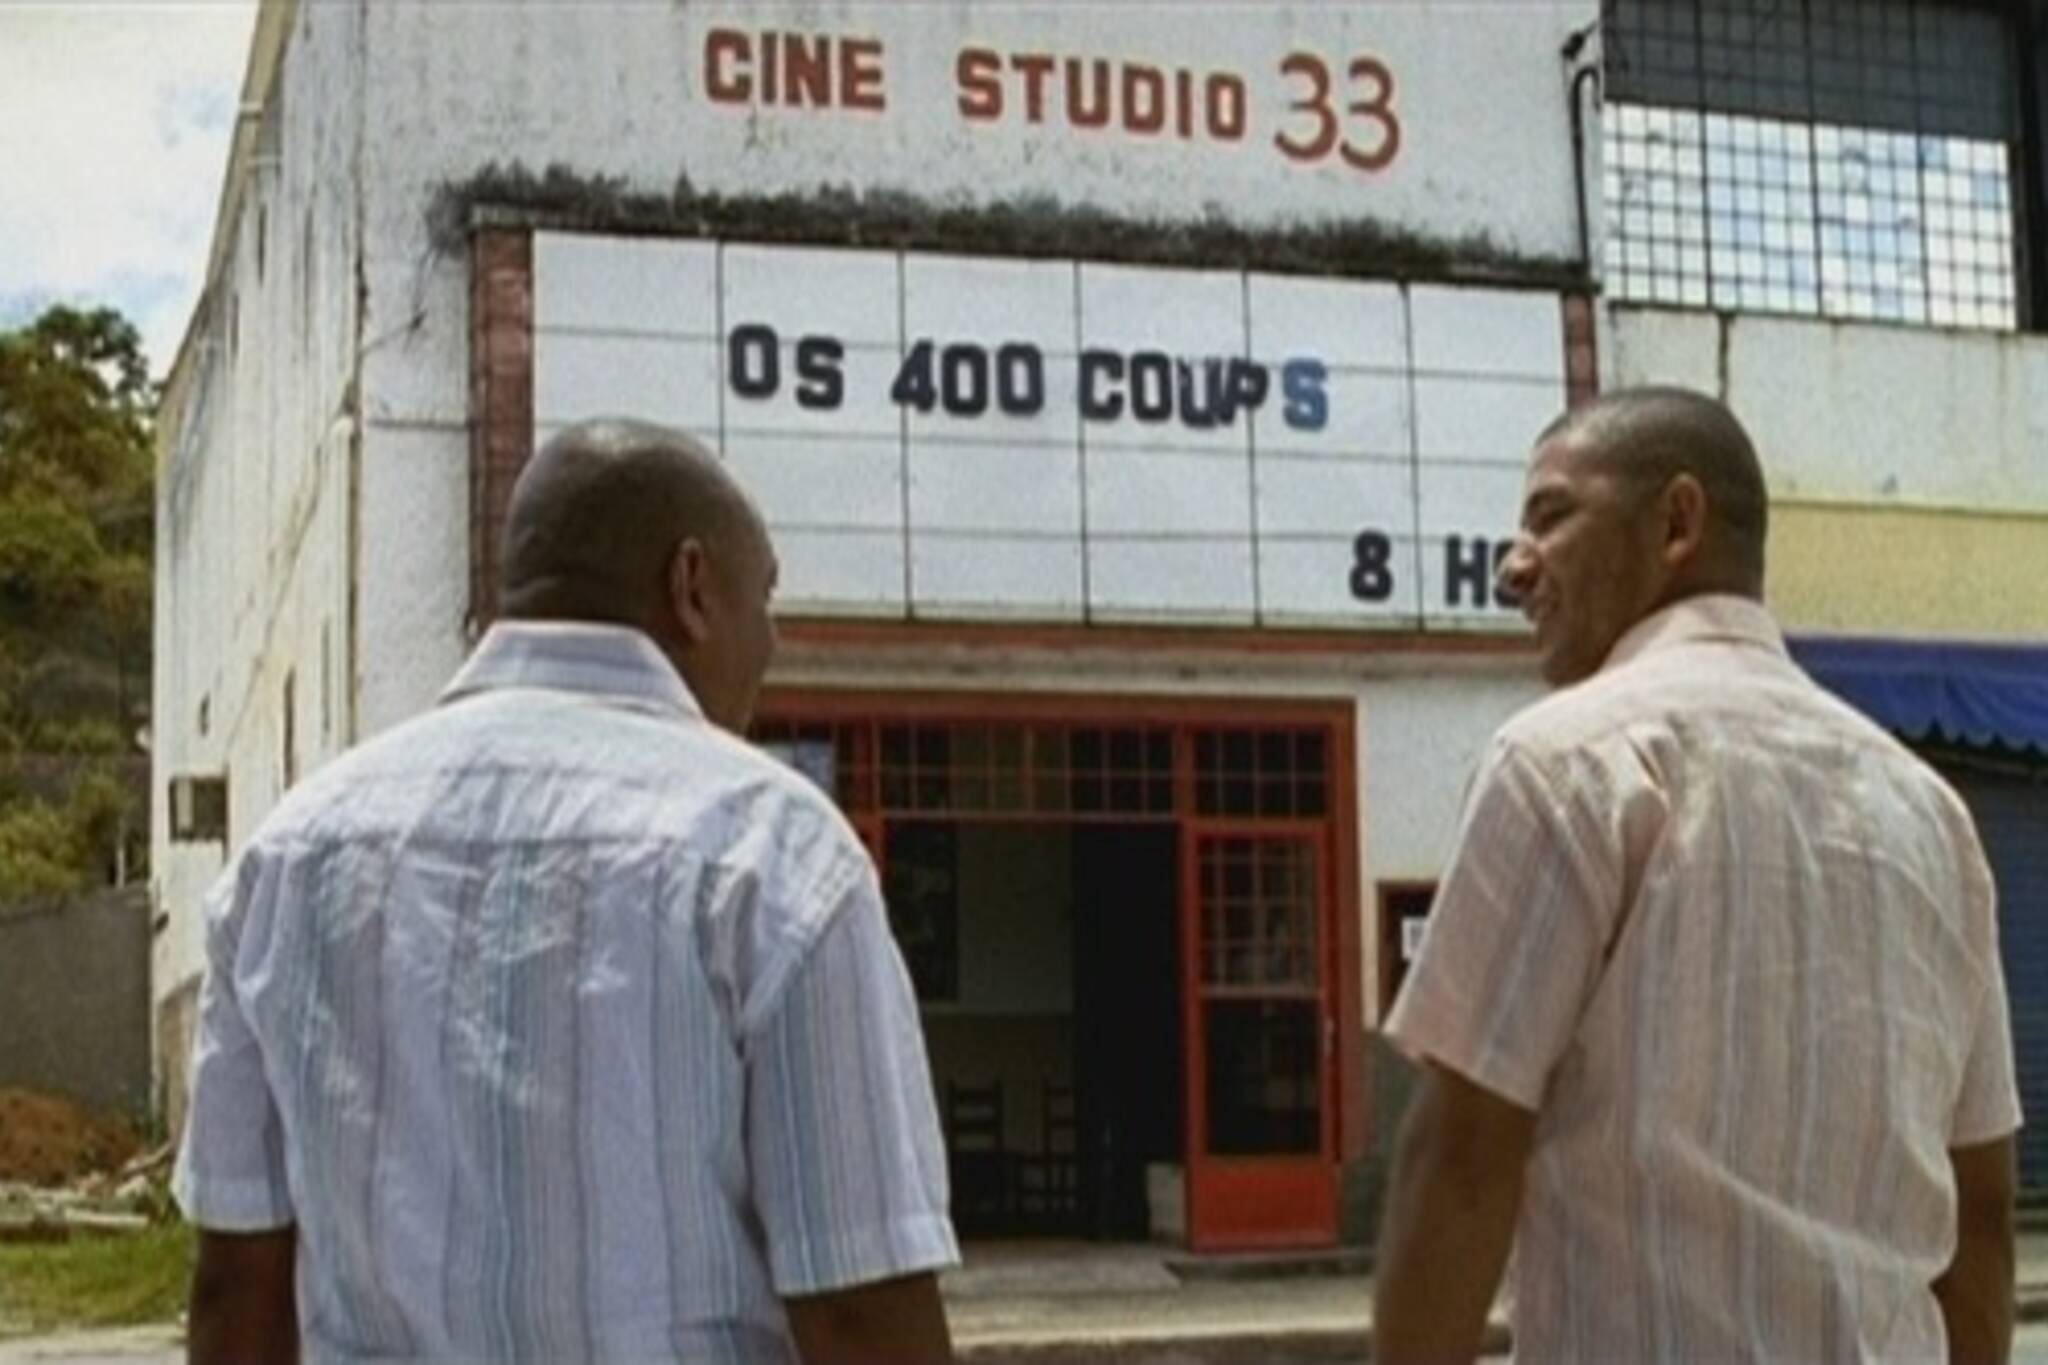 Still from Chacun son cinema